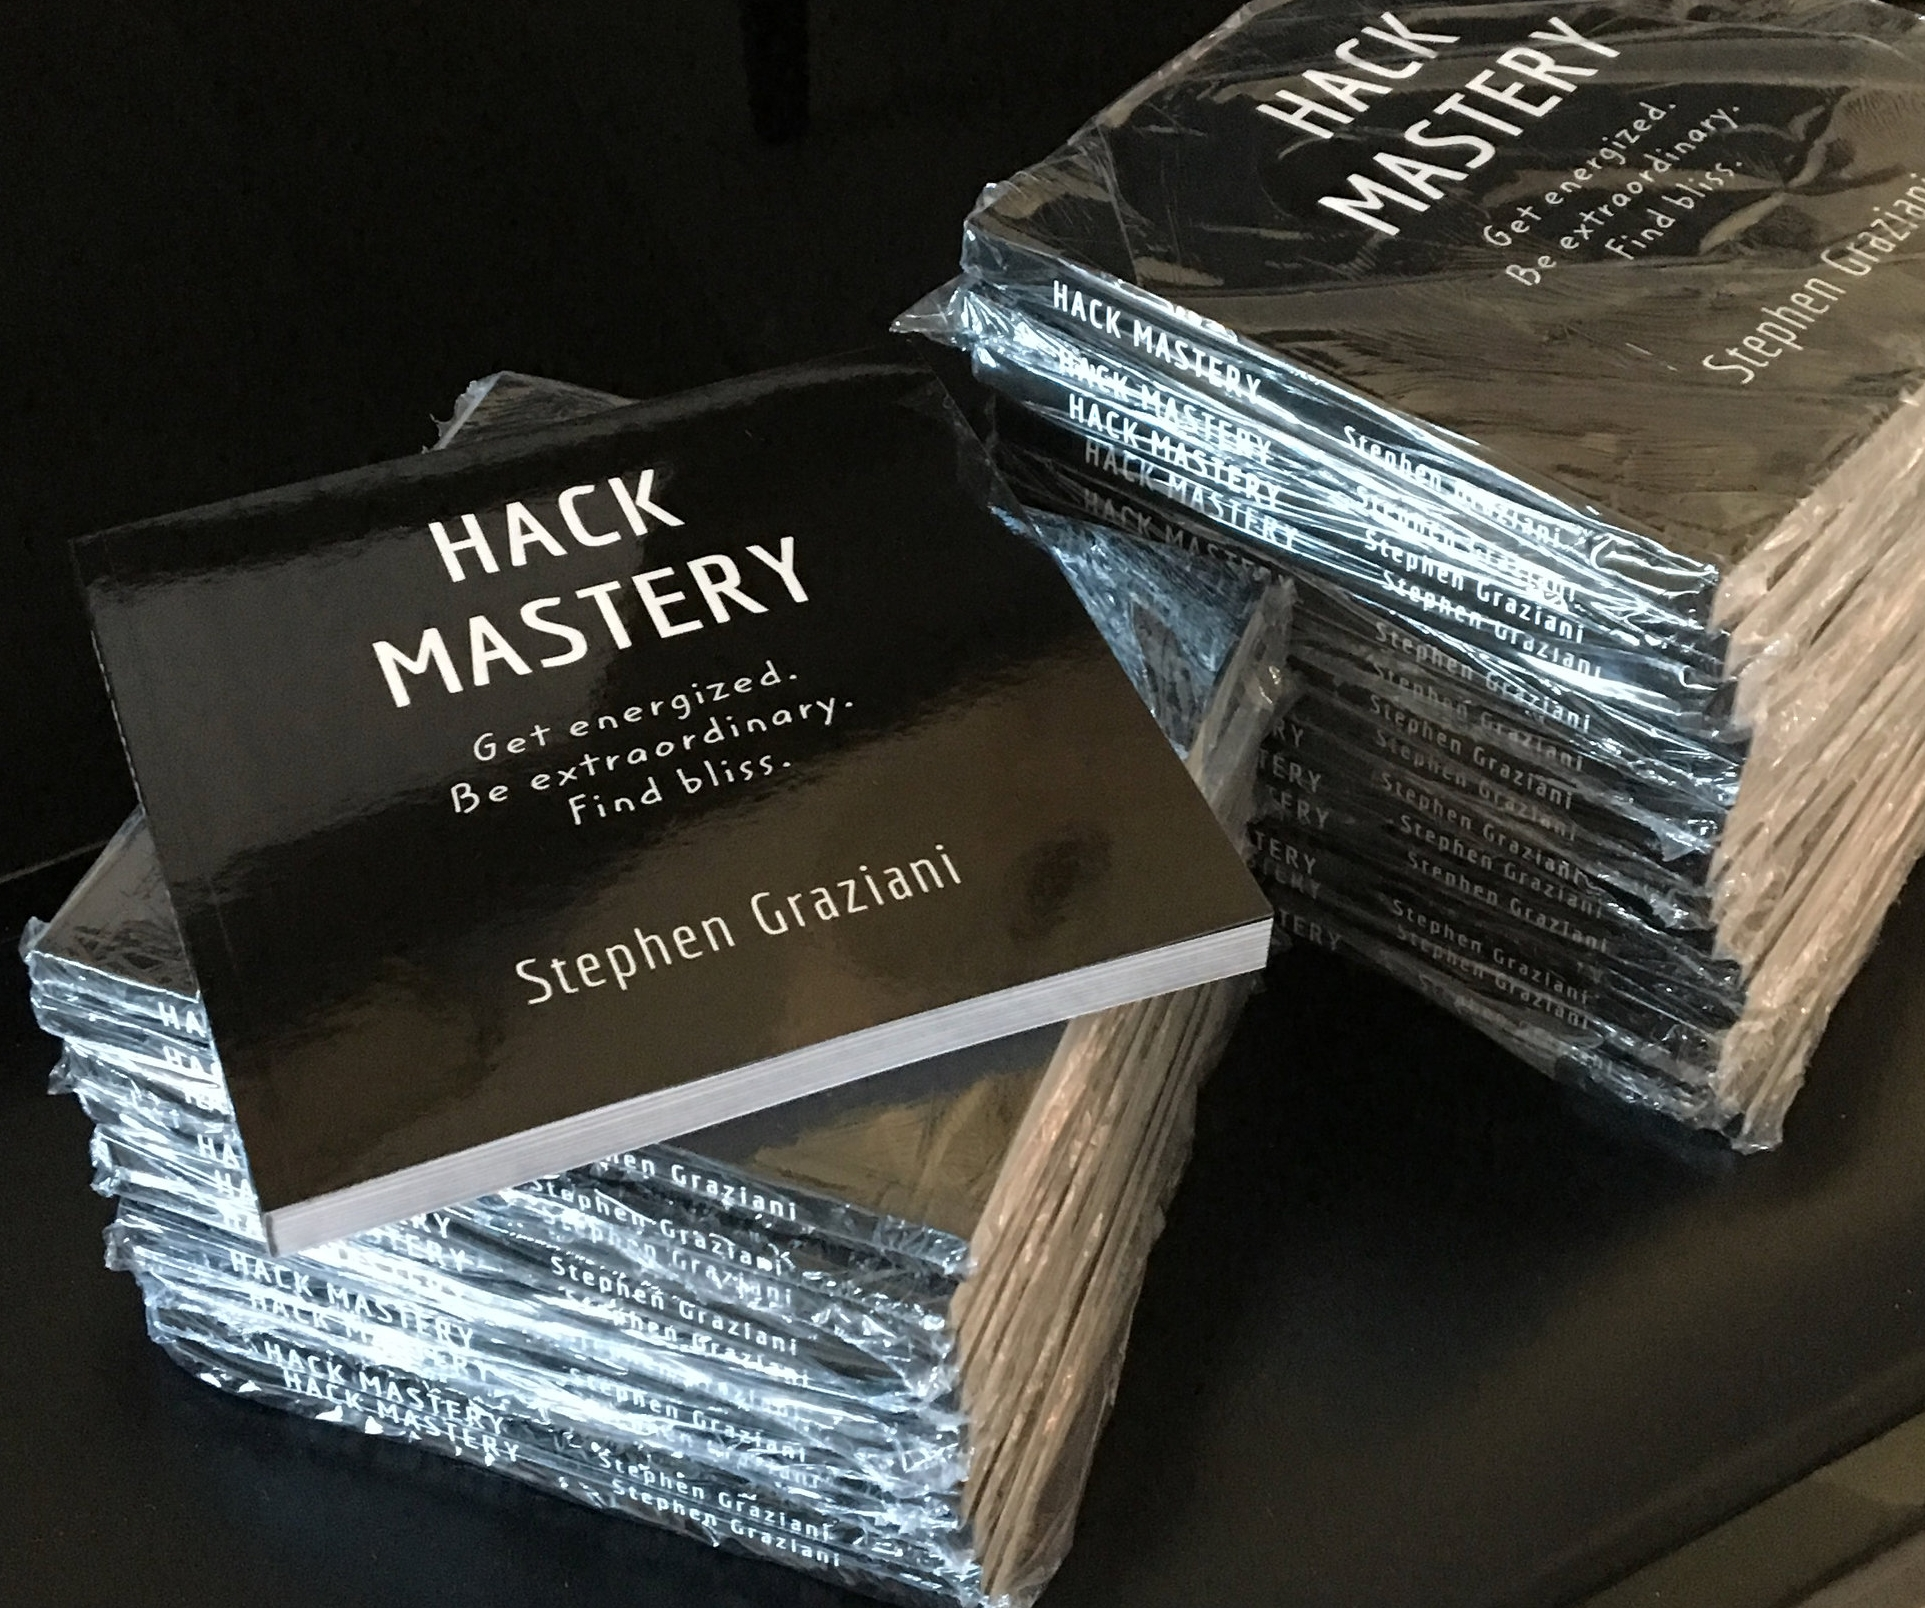 Hack Mastery - a book about success and fulfillment.